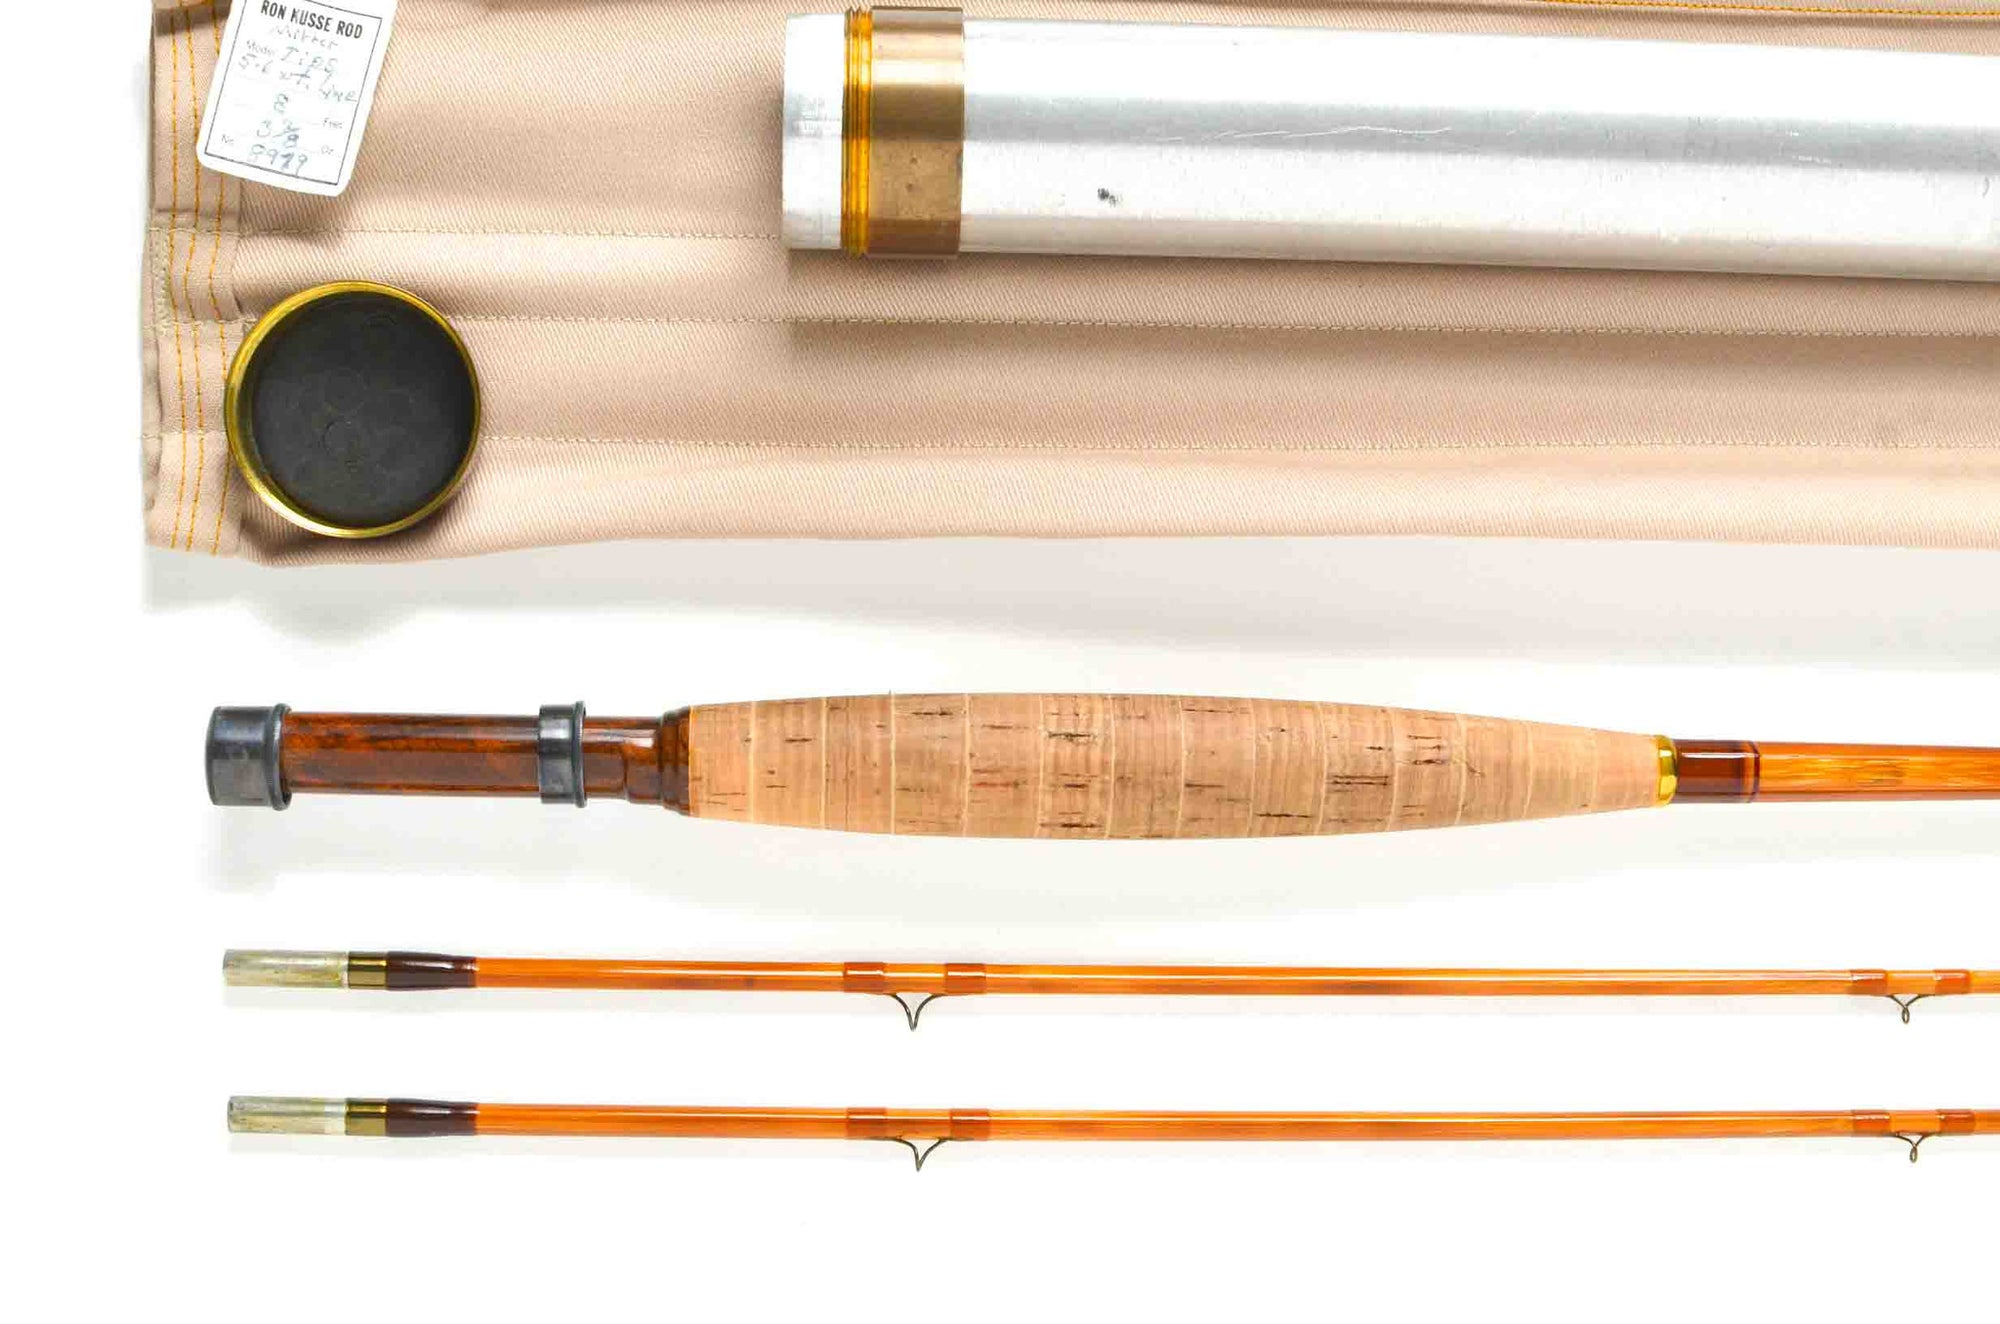 Ron Kusse Fly Rod 8' 2/2 #5/6